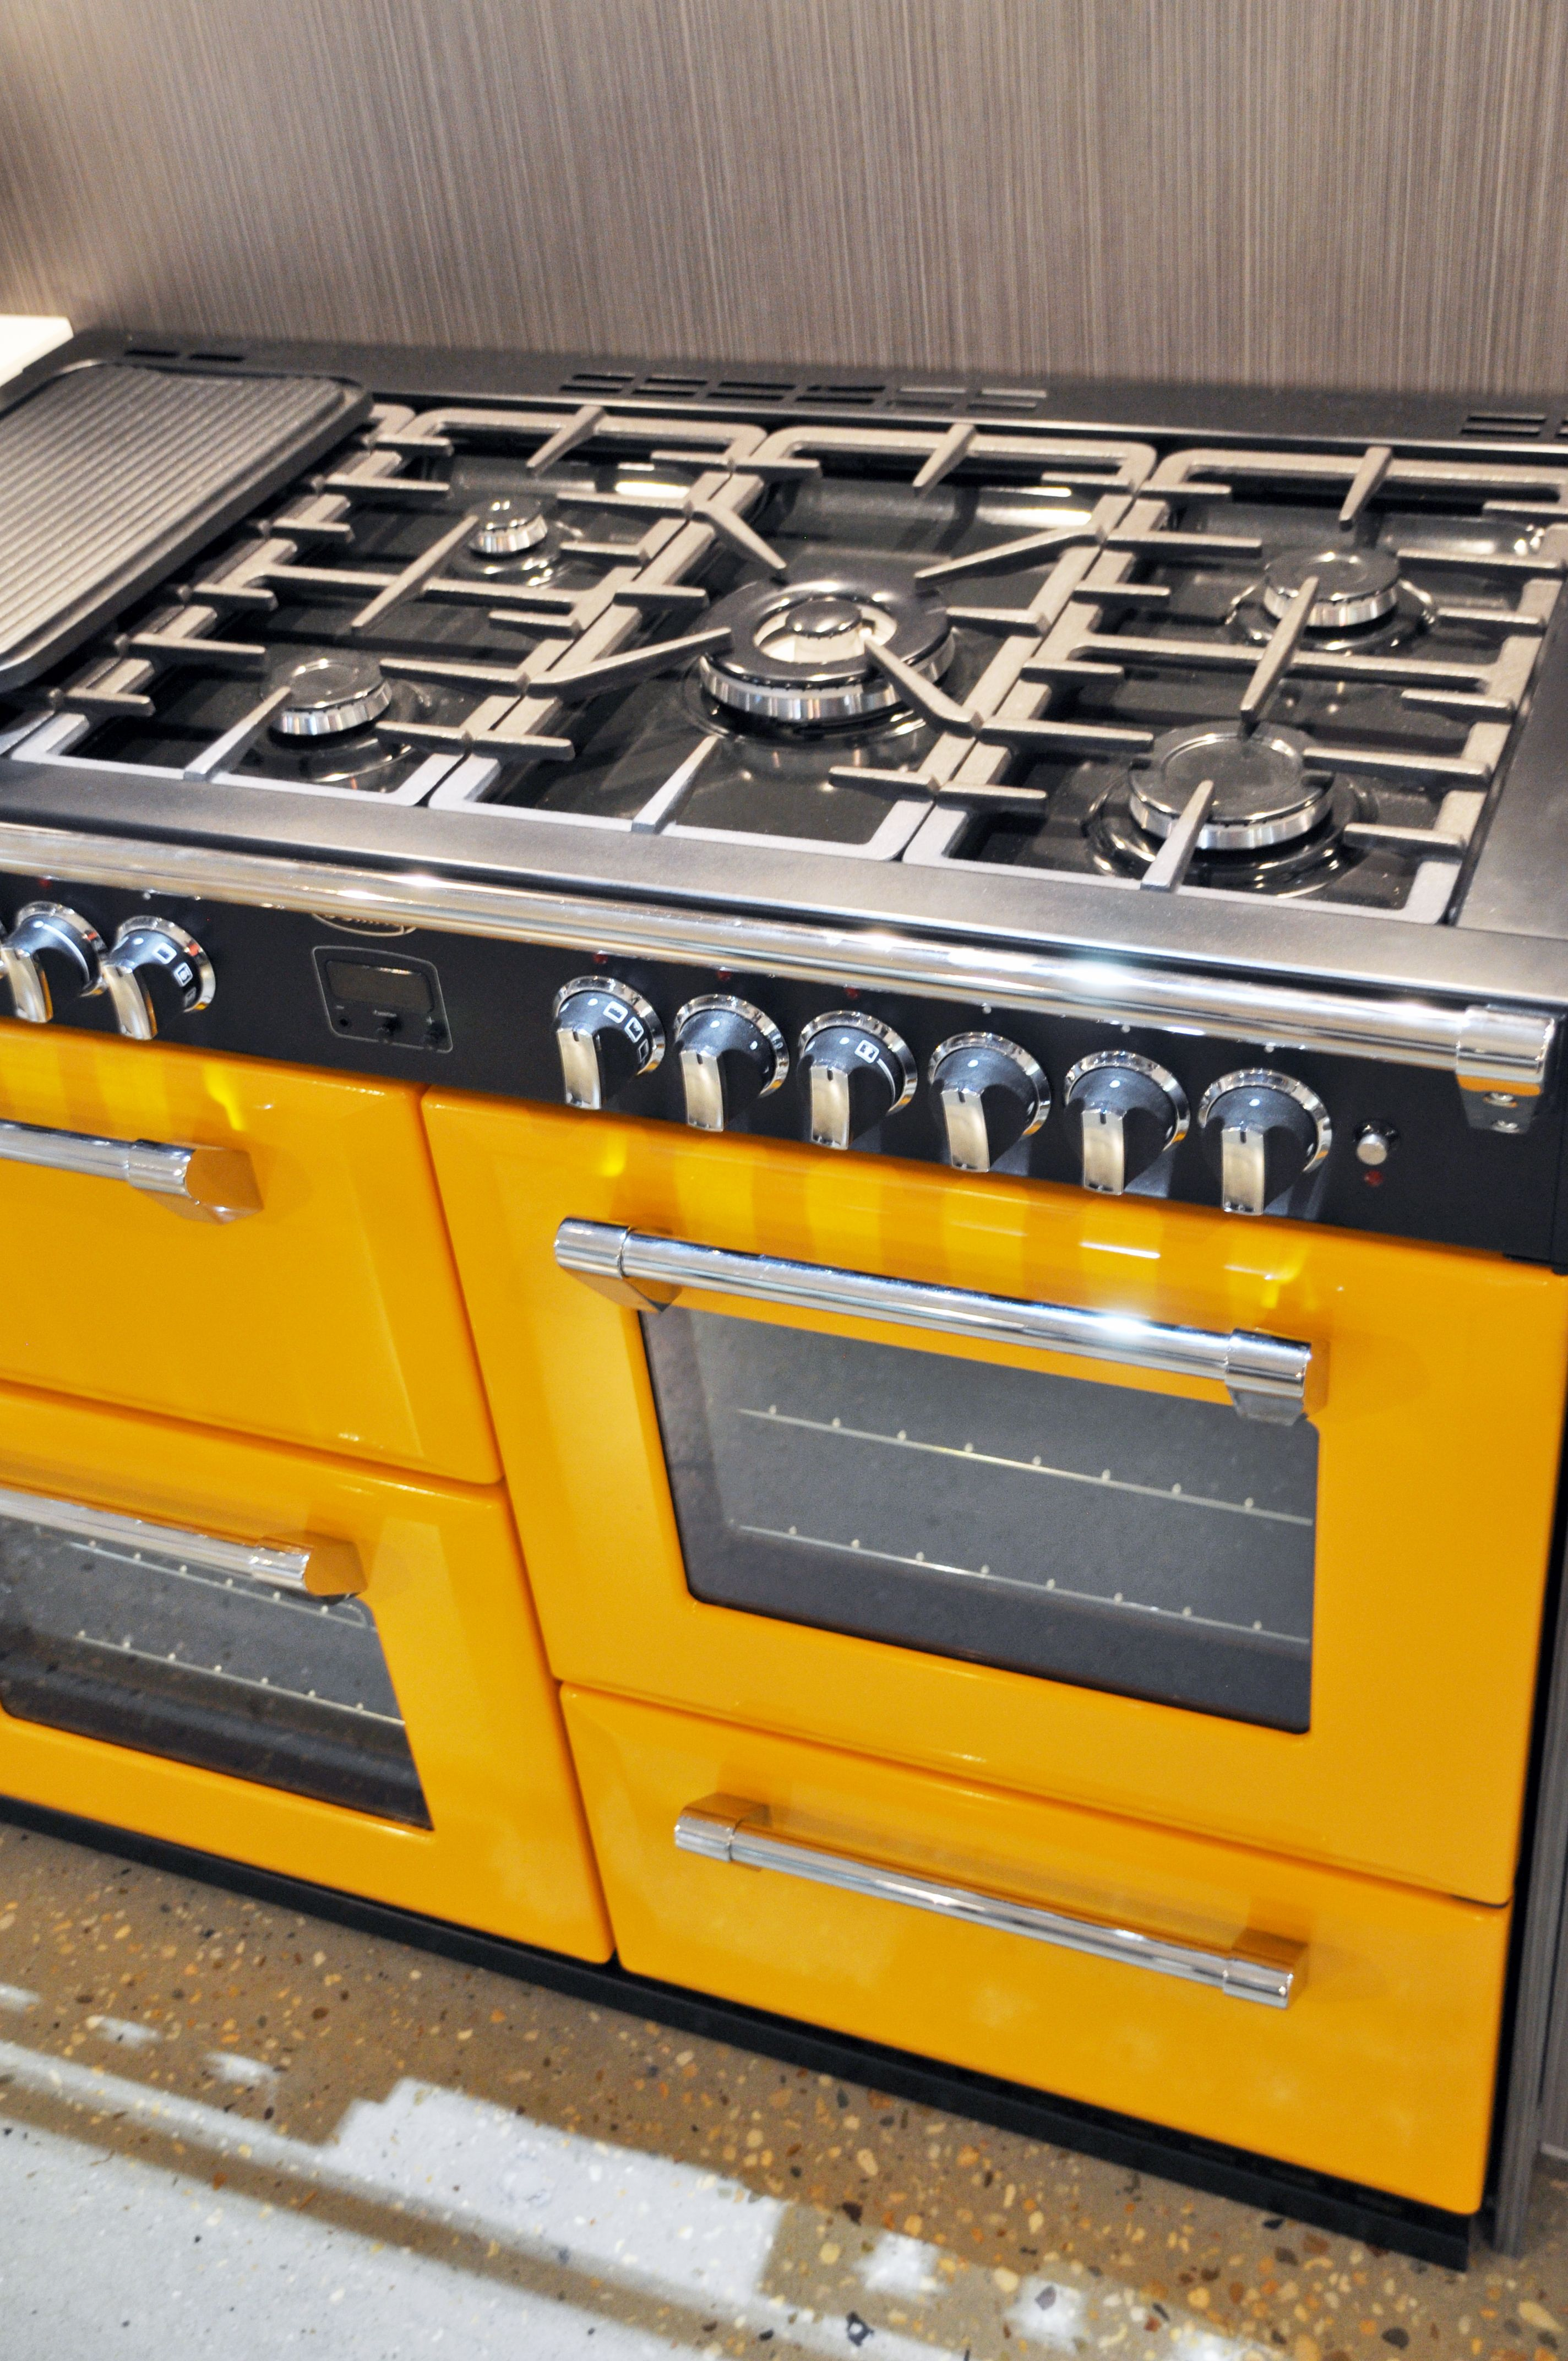 Uk Built For Australian Standards This Yellow Range Cooker Is Part Of The Colour Boutique Collection First Bloom Rem Range Cooker Kitchen Oven Kitchen Colors